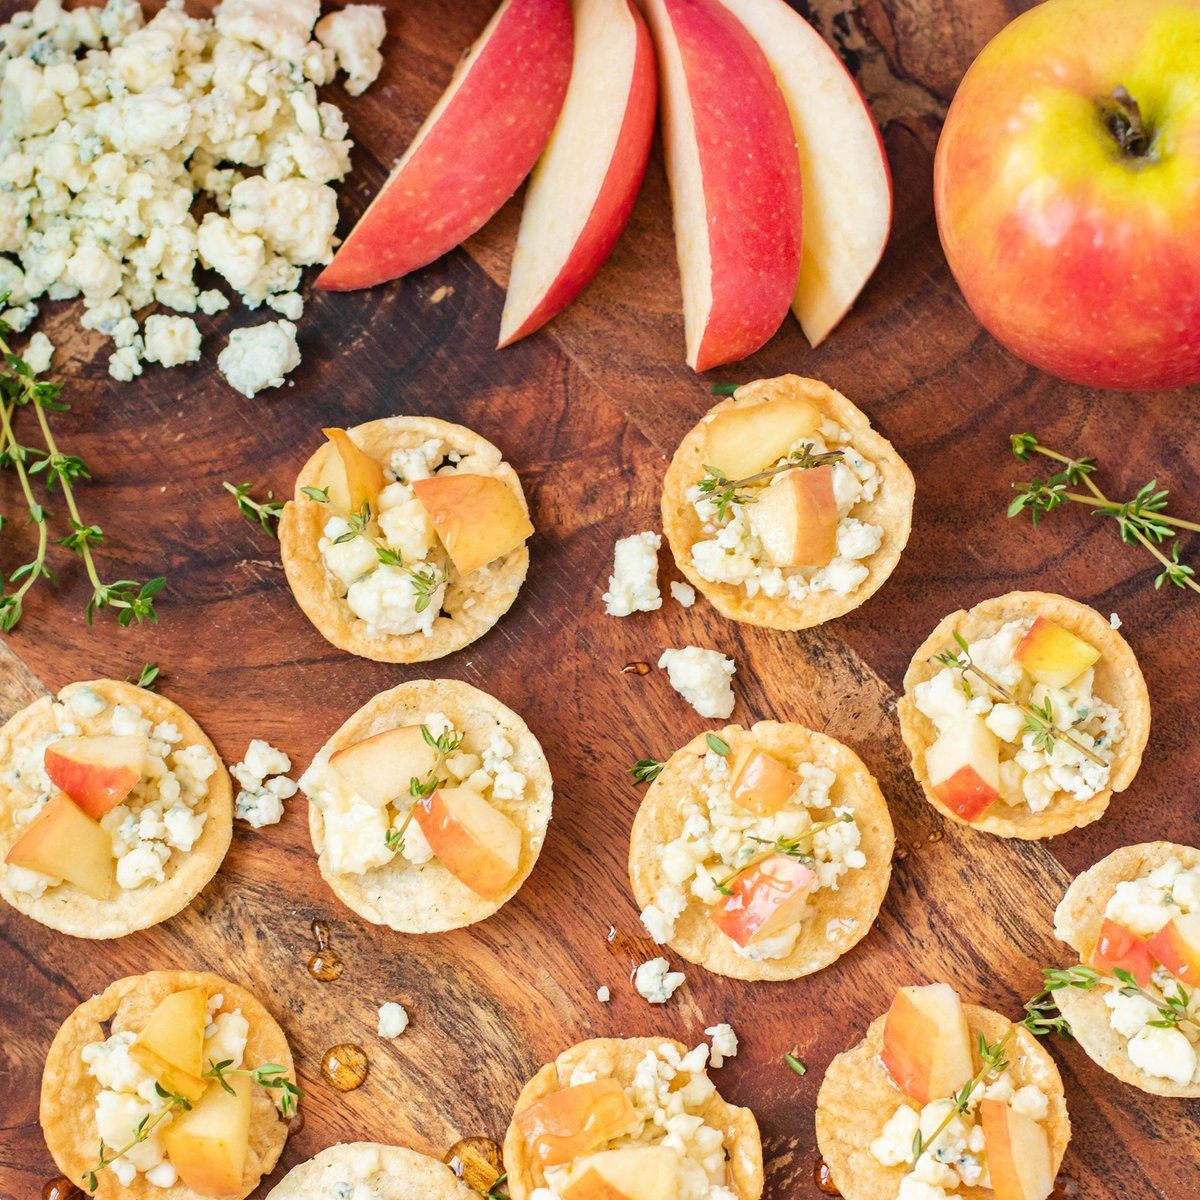 🚨 Cheesy Post Alert: If you were a fruit, you'd be a fineapple. 🍏    #popchips Sea Salt #crostinis topped with blue cheese, apple, fresh thyme & honey 🌱🍯 https://t.co/R5yCnAIqlY